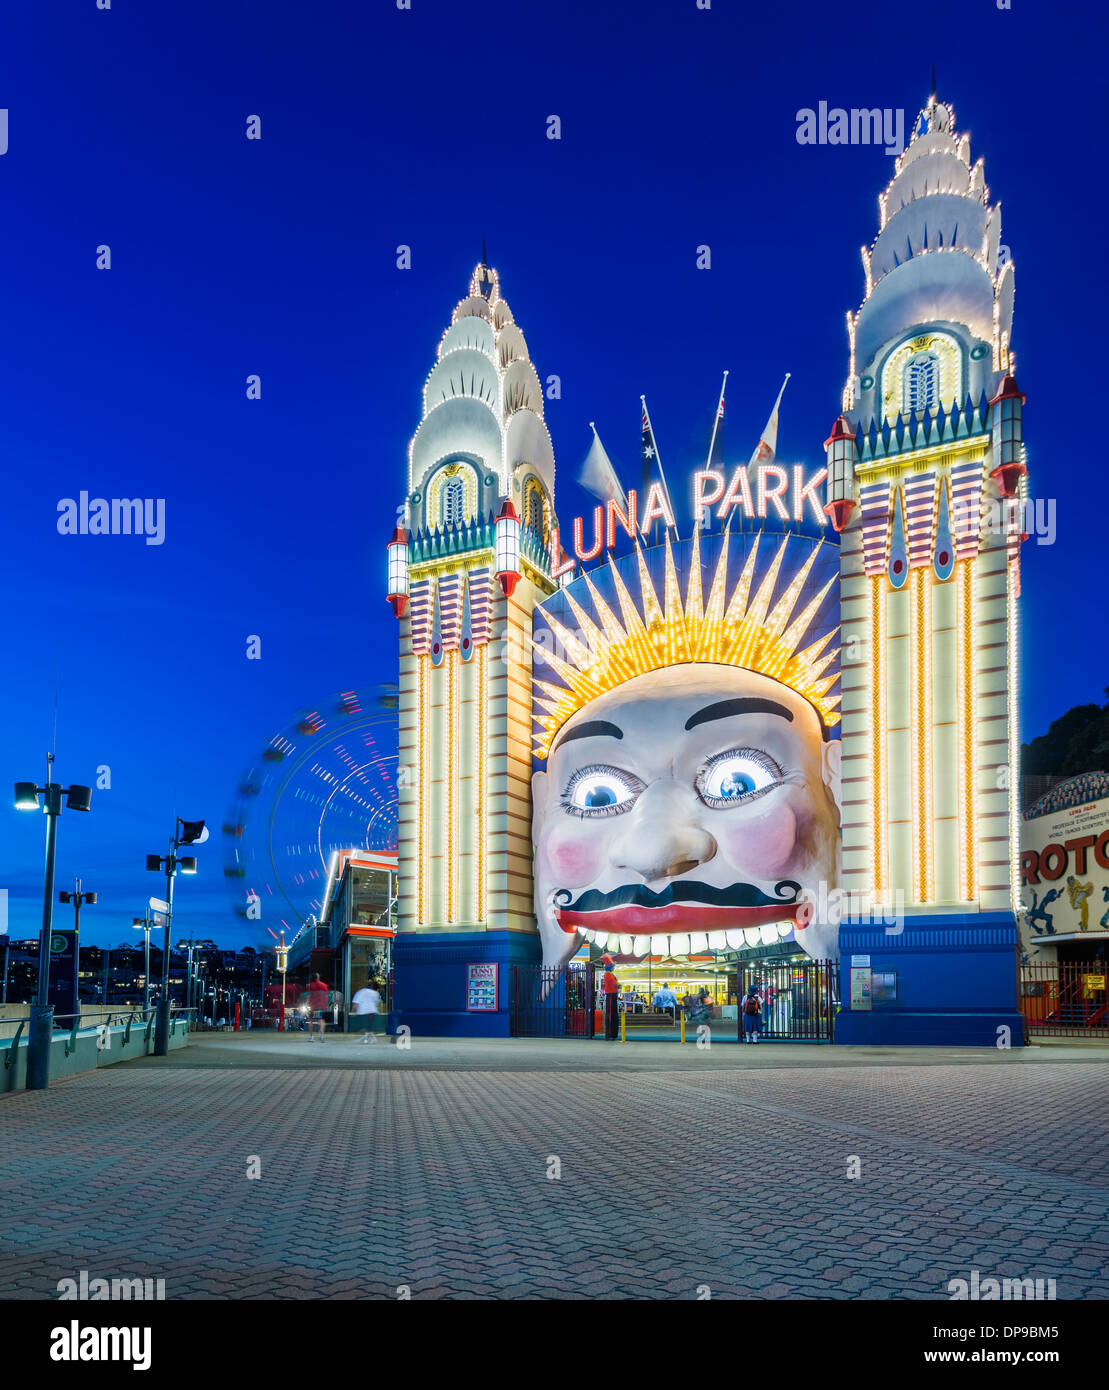 Luna Park Amusement park at night, Sydney, Australia - Stock Image